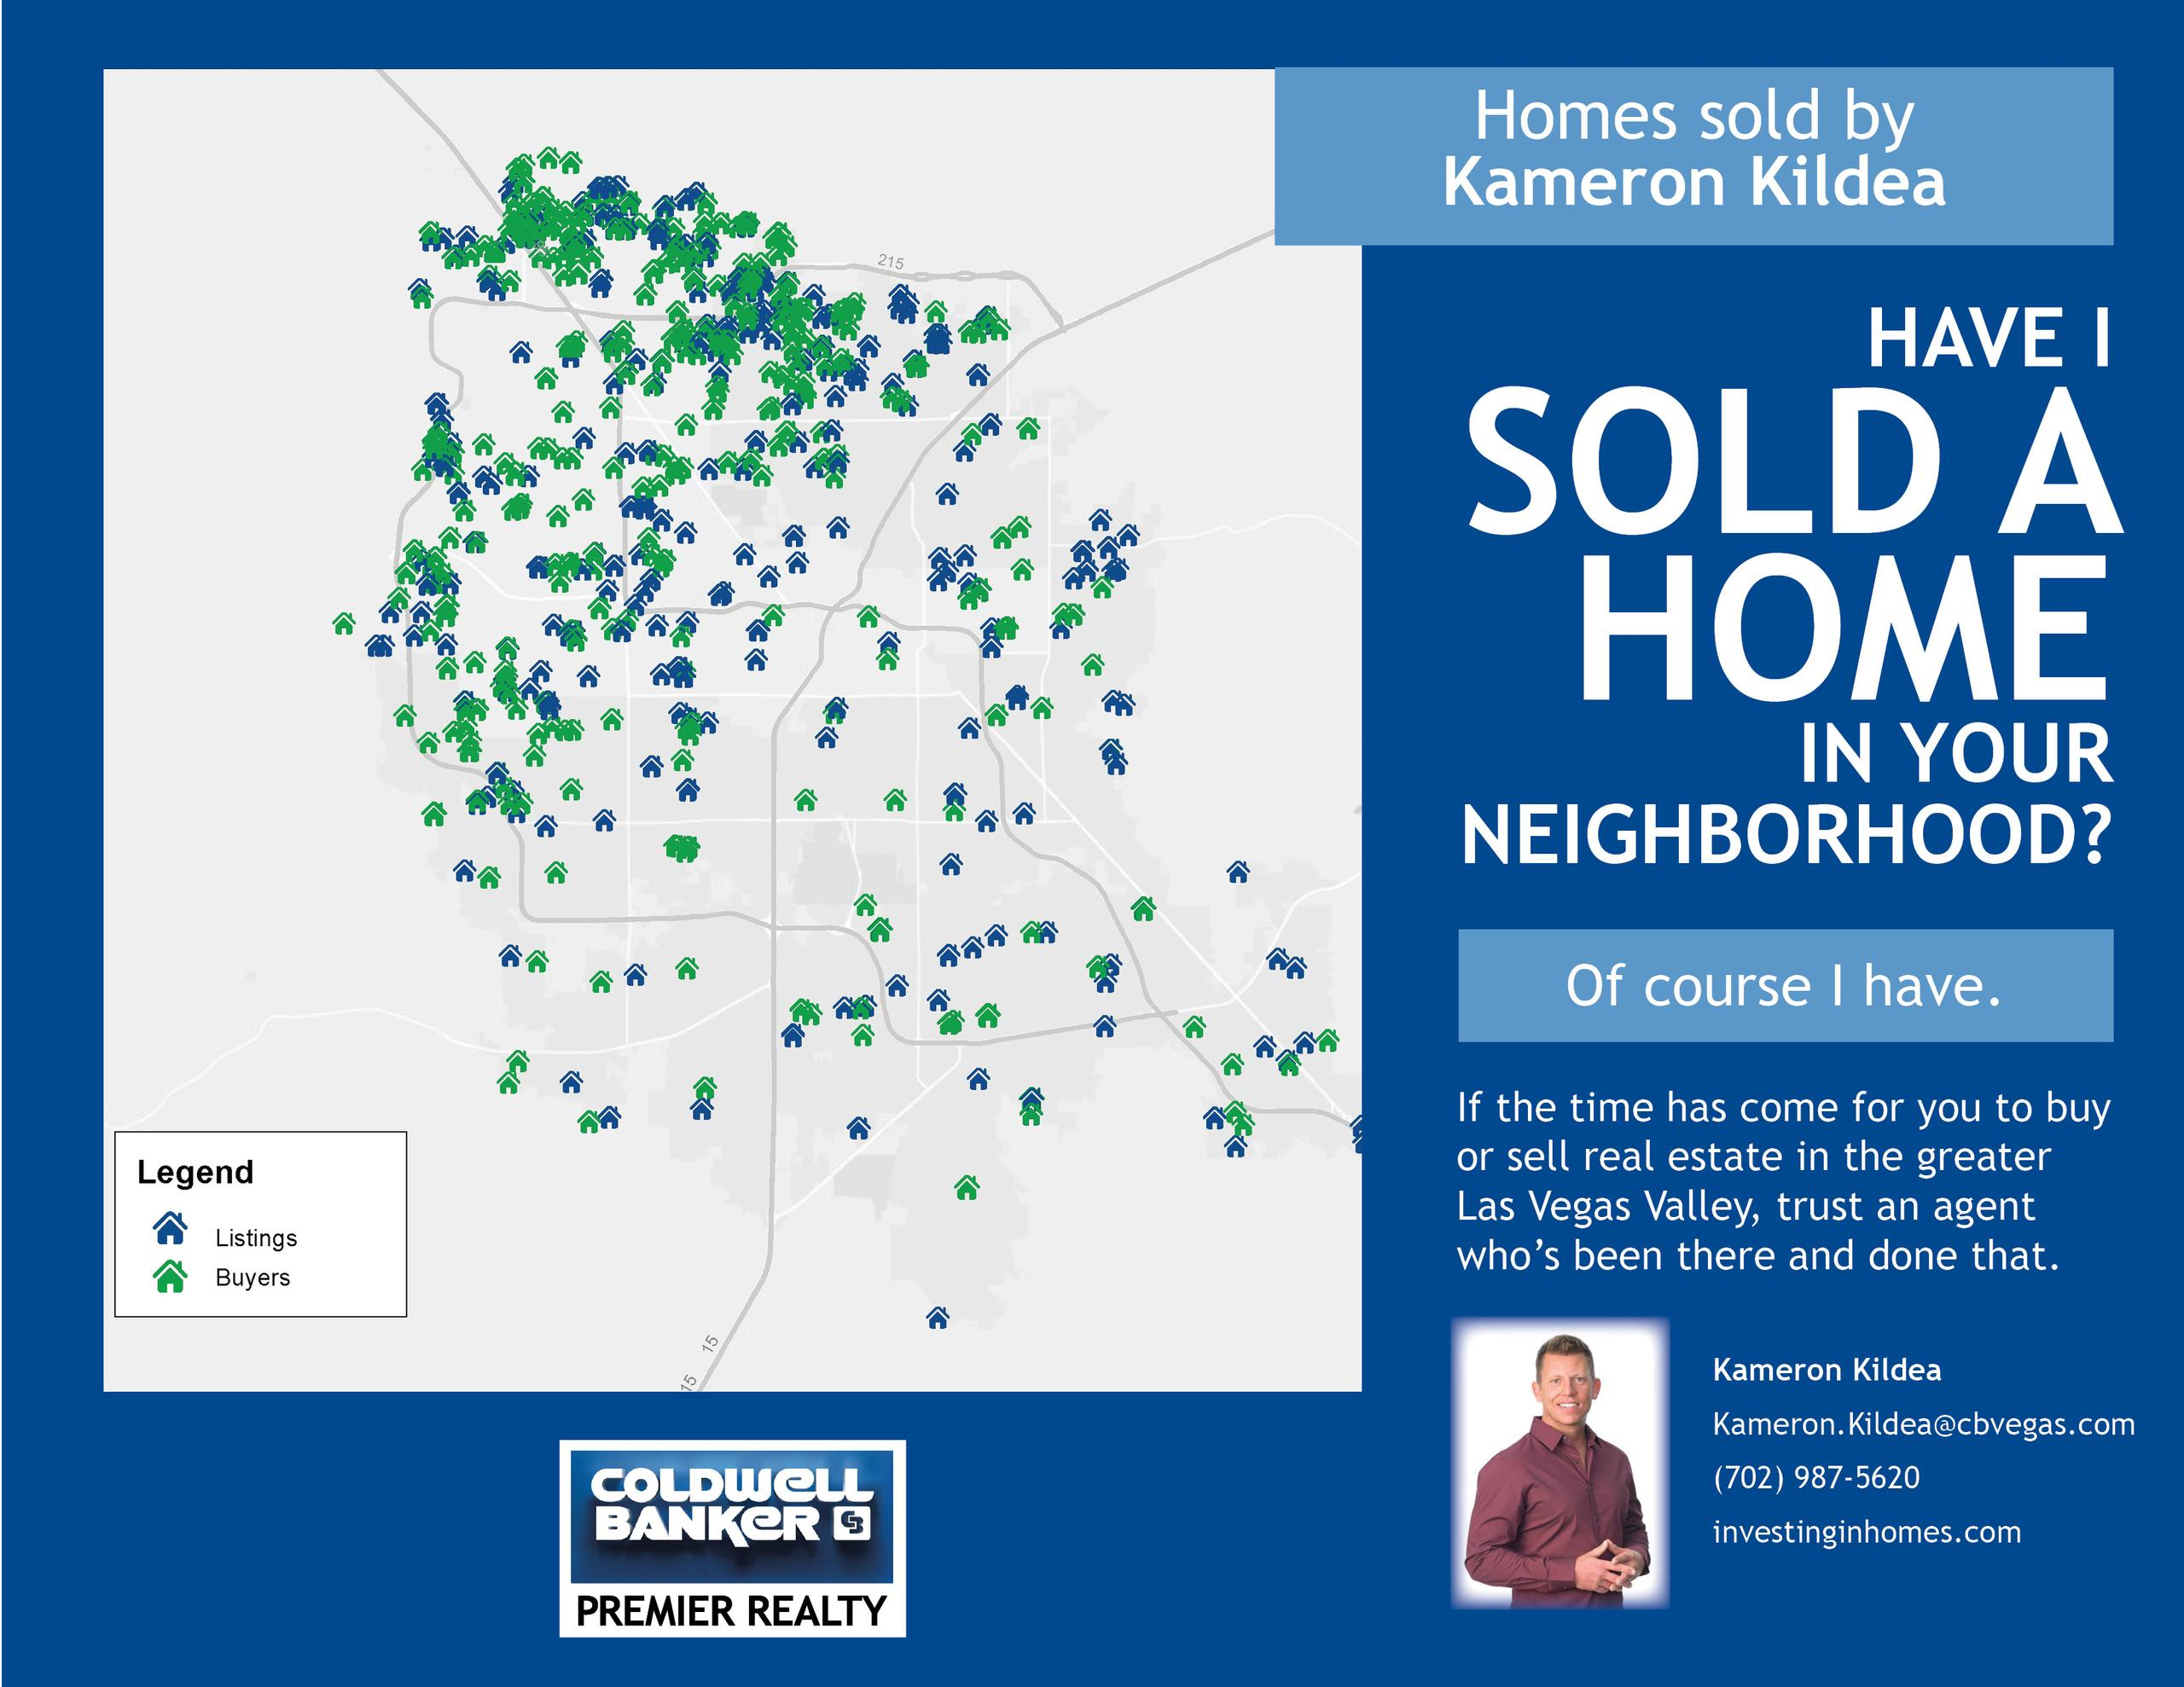 Have I Sold A Home In Your Neighborhood?